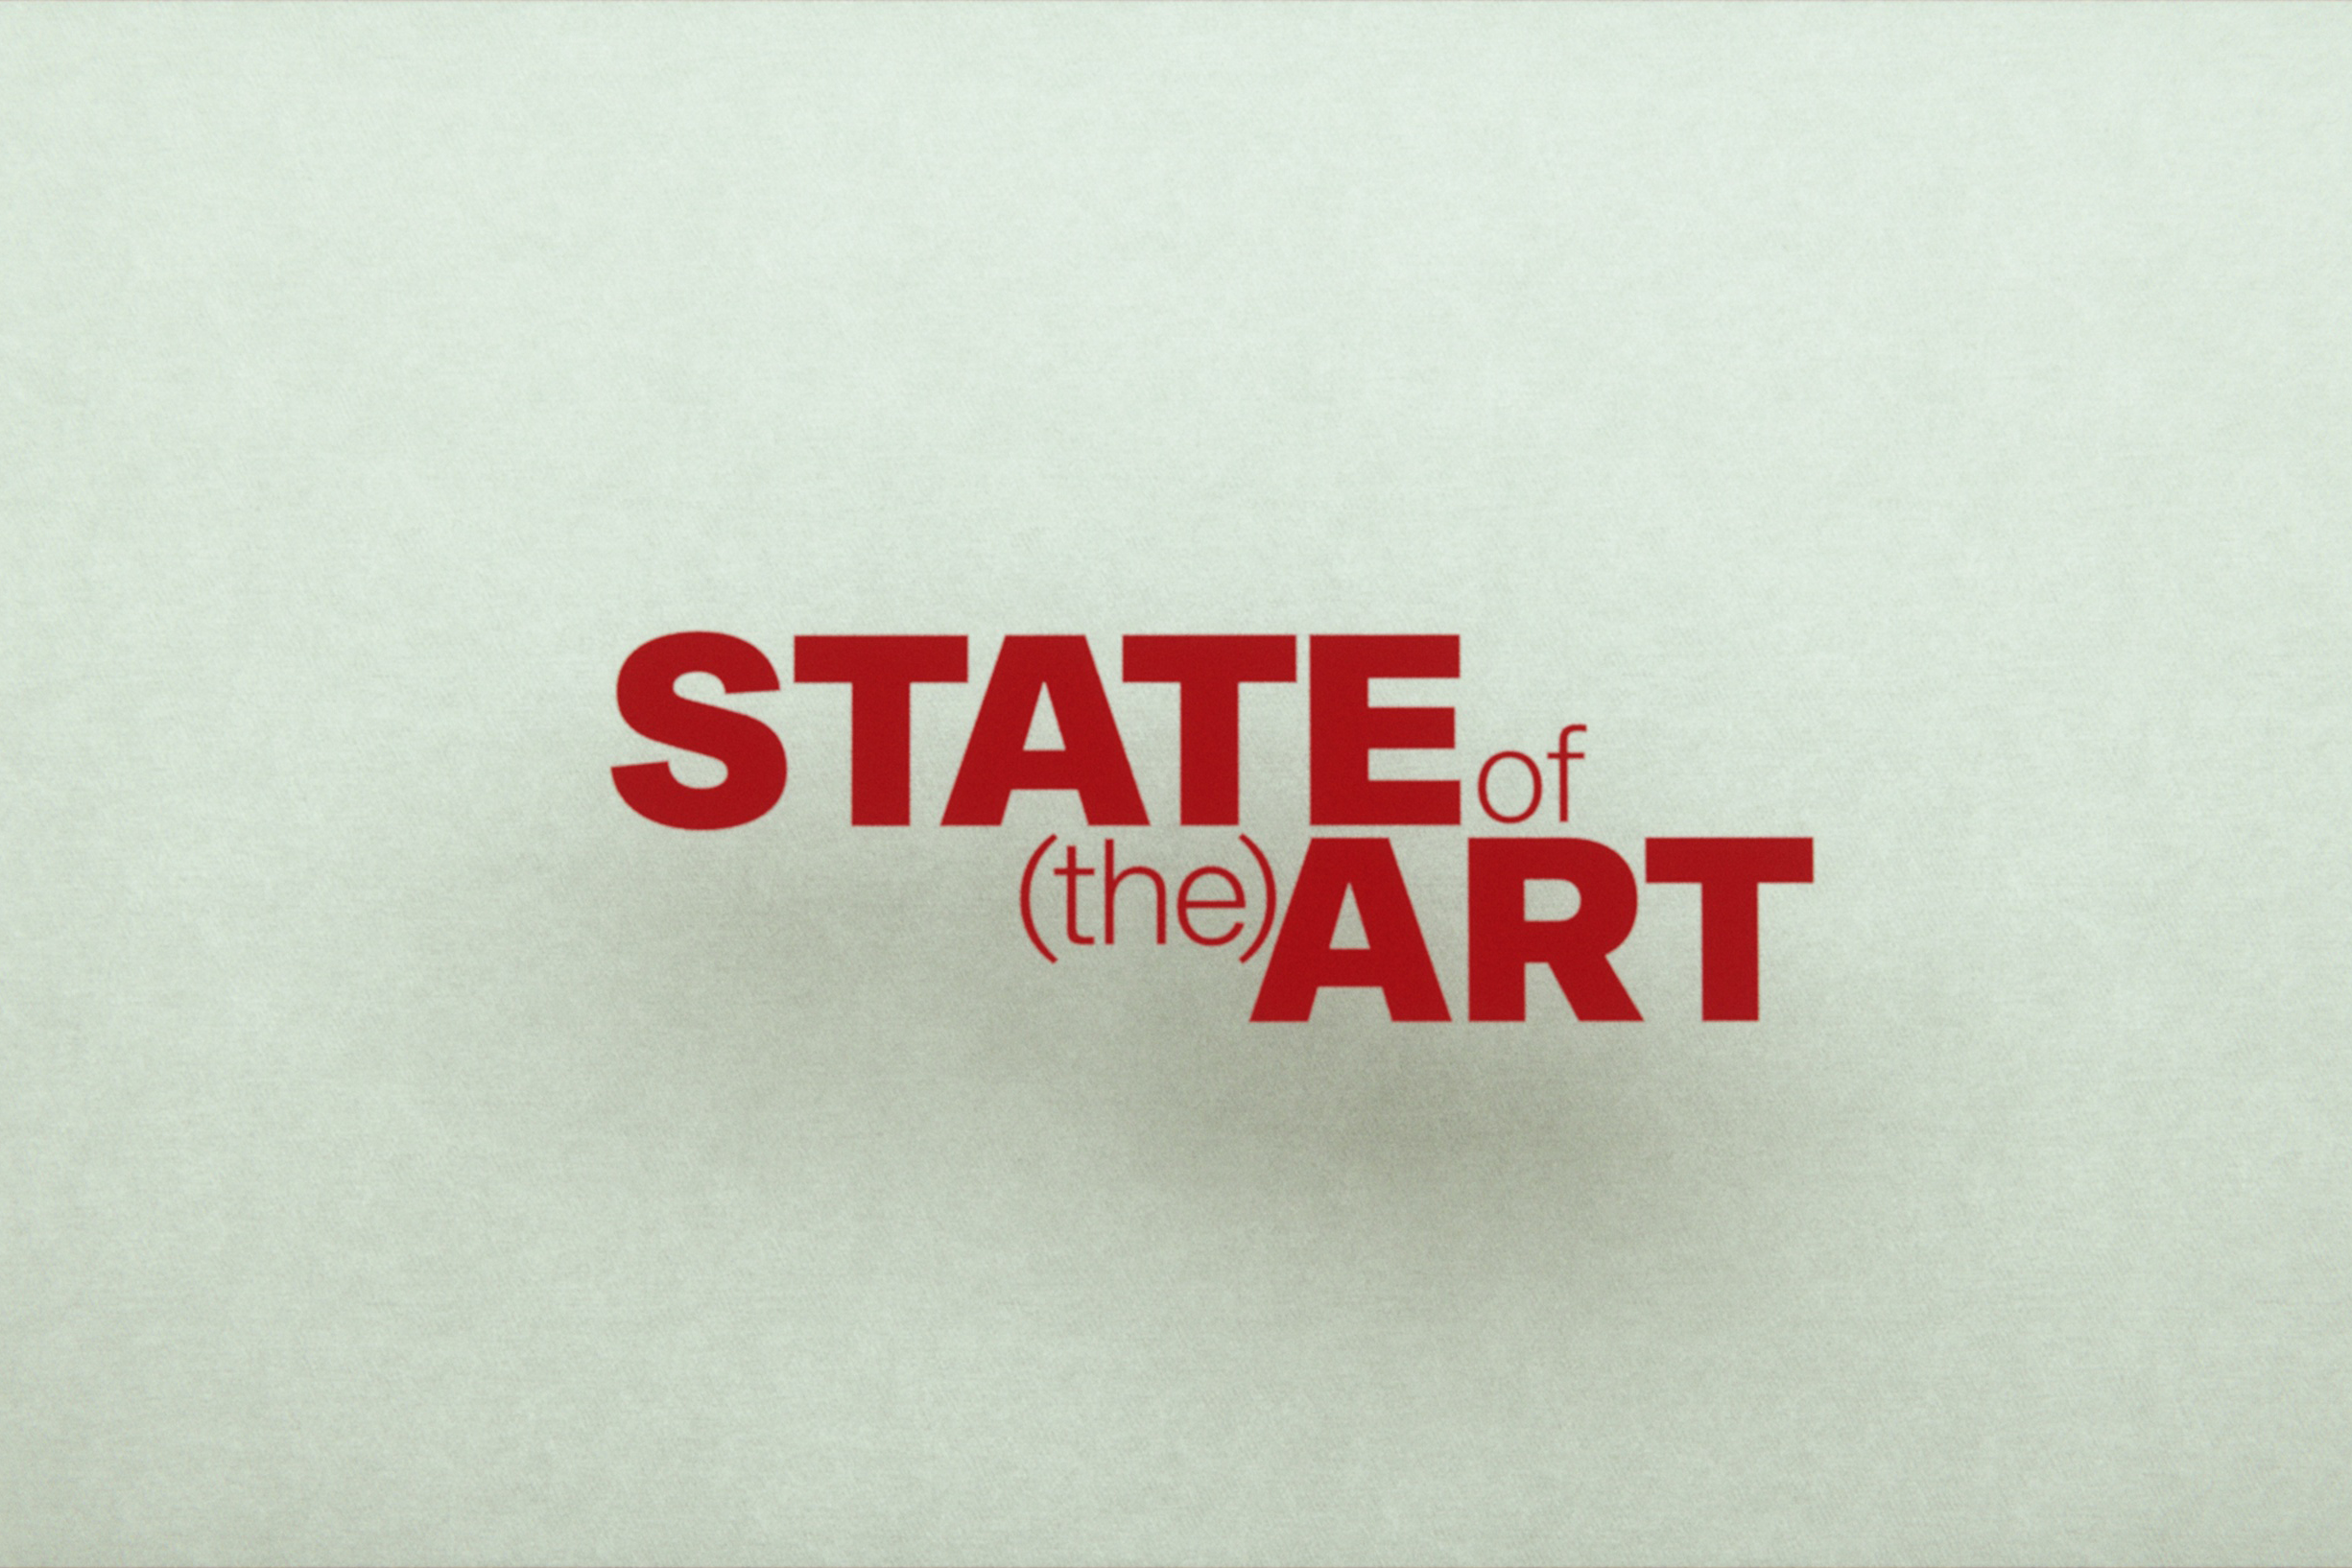 State of (the) Art